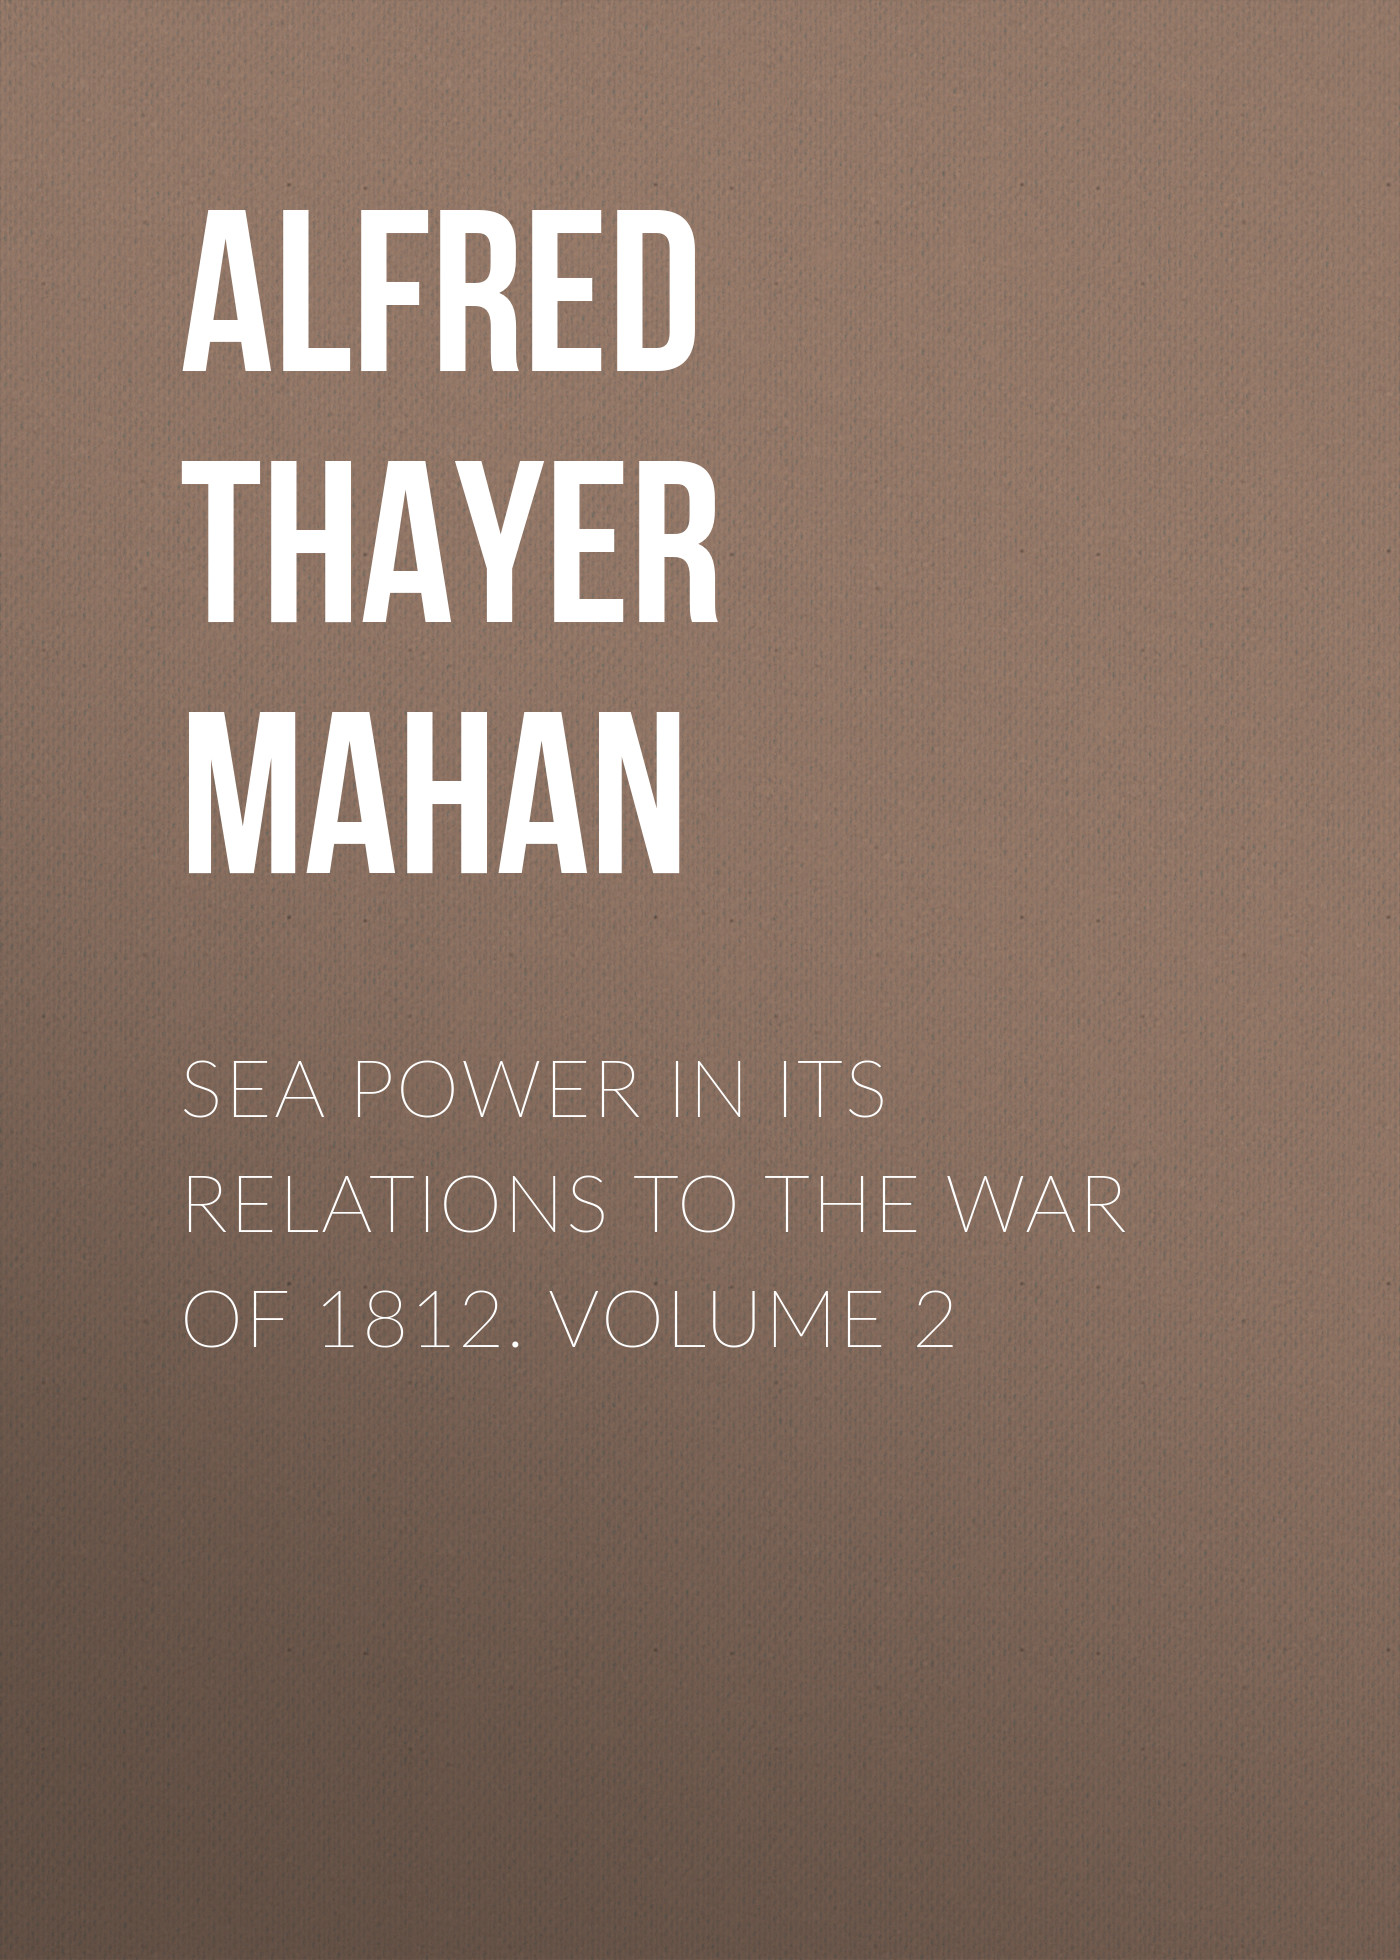 Alfred Thayer Mahan Sea Power in its Relations to the War of 1812. Volume 2 pak afghan relations in post taliban era